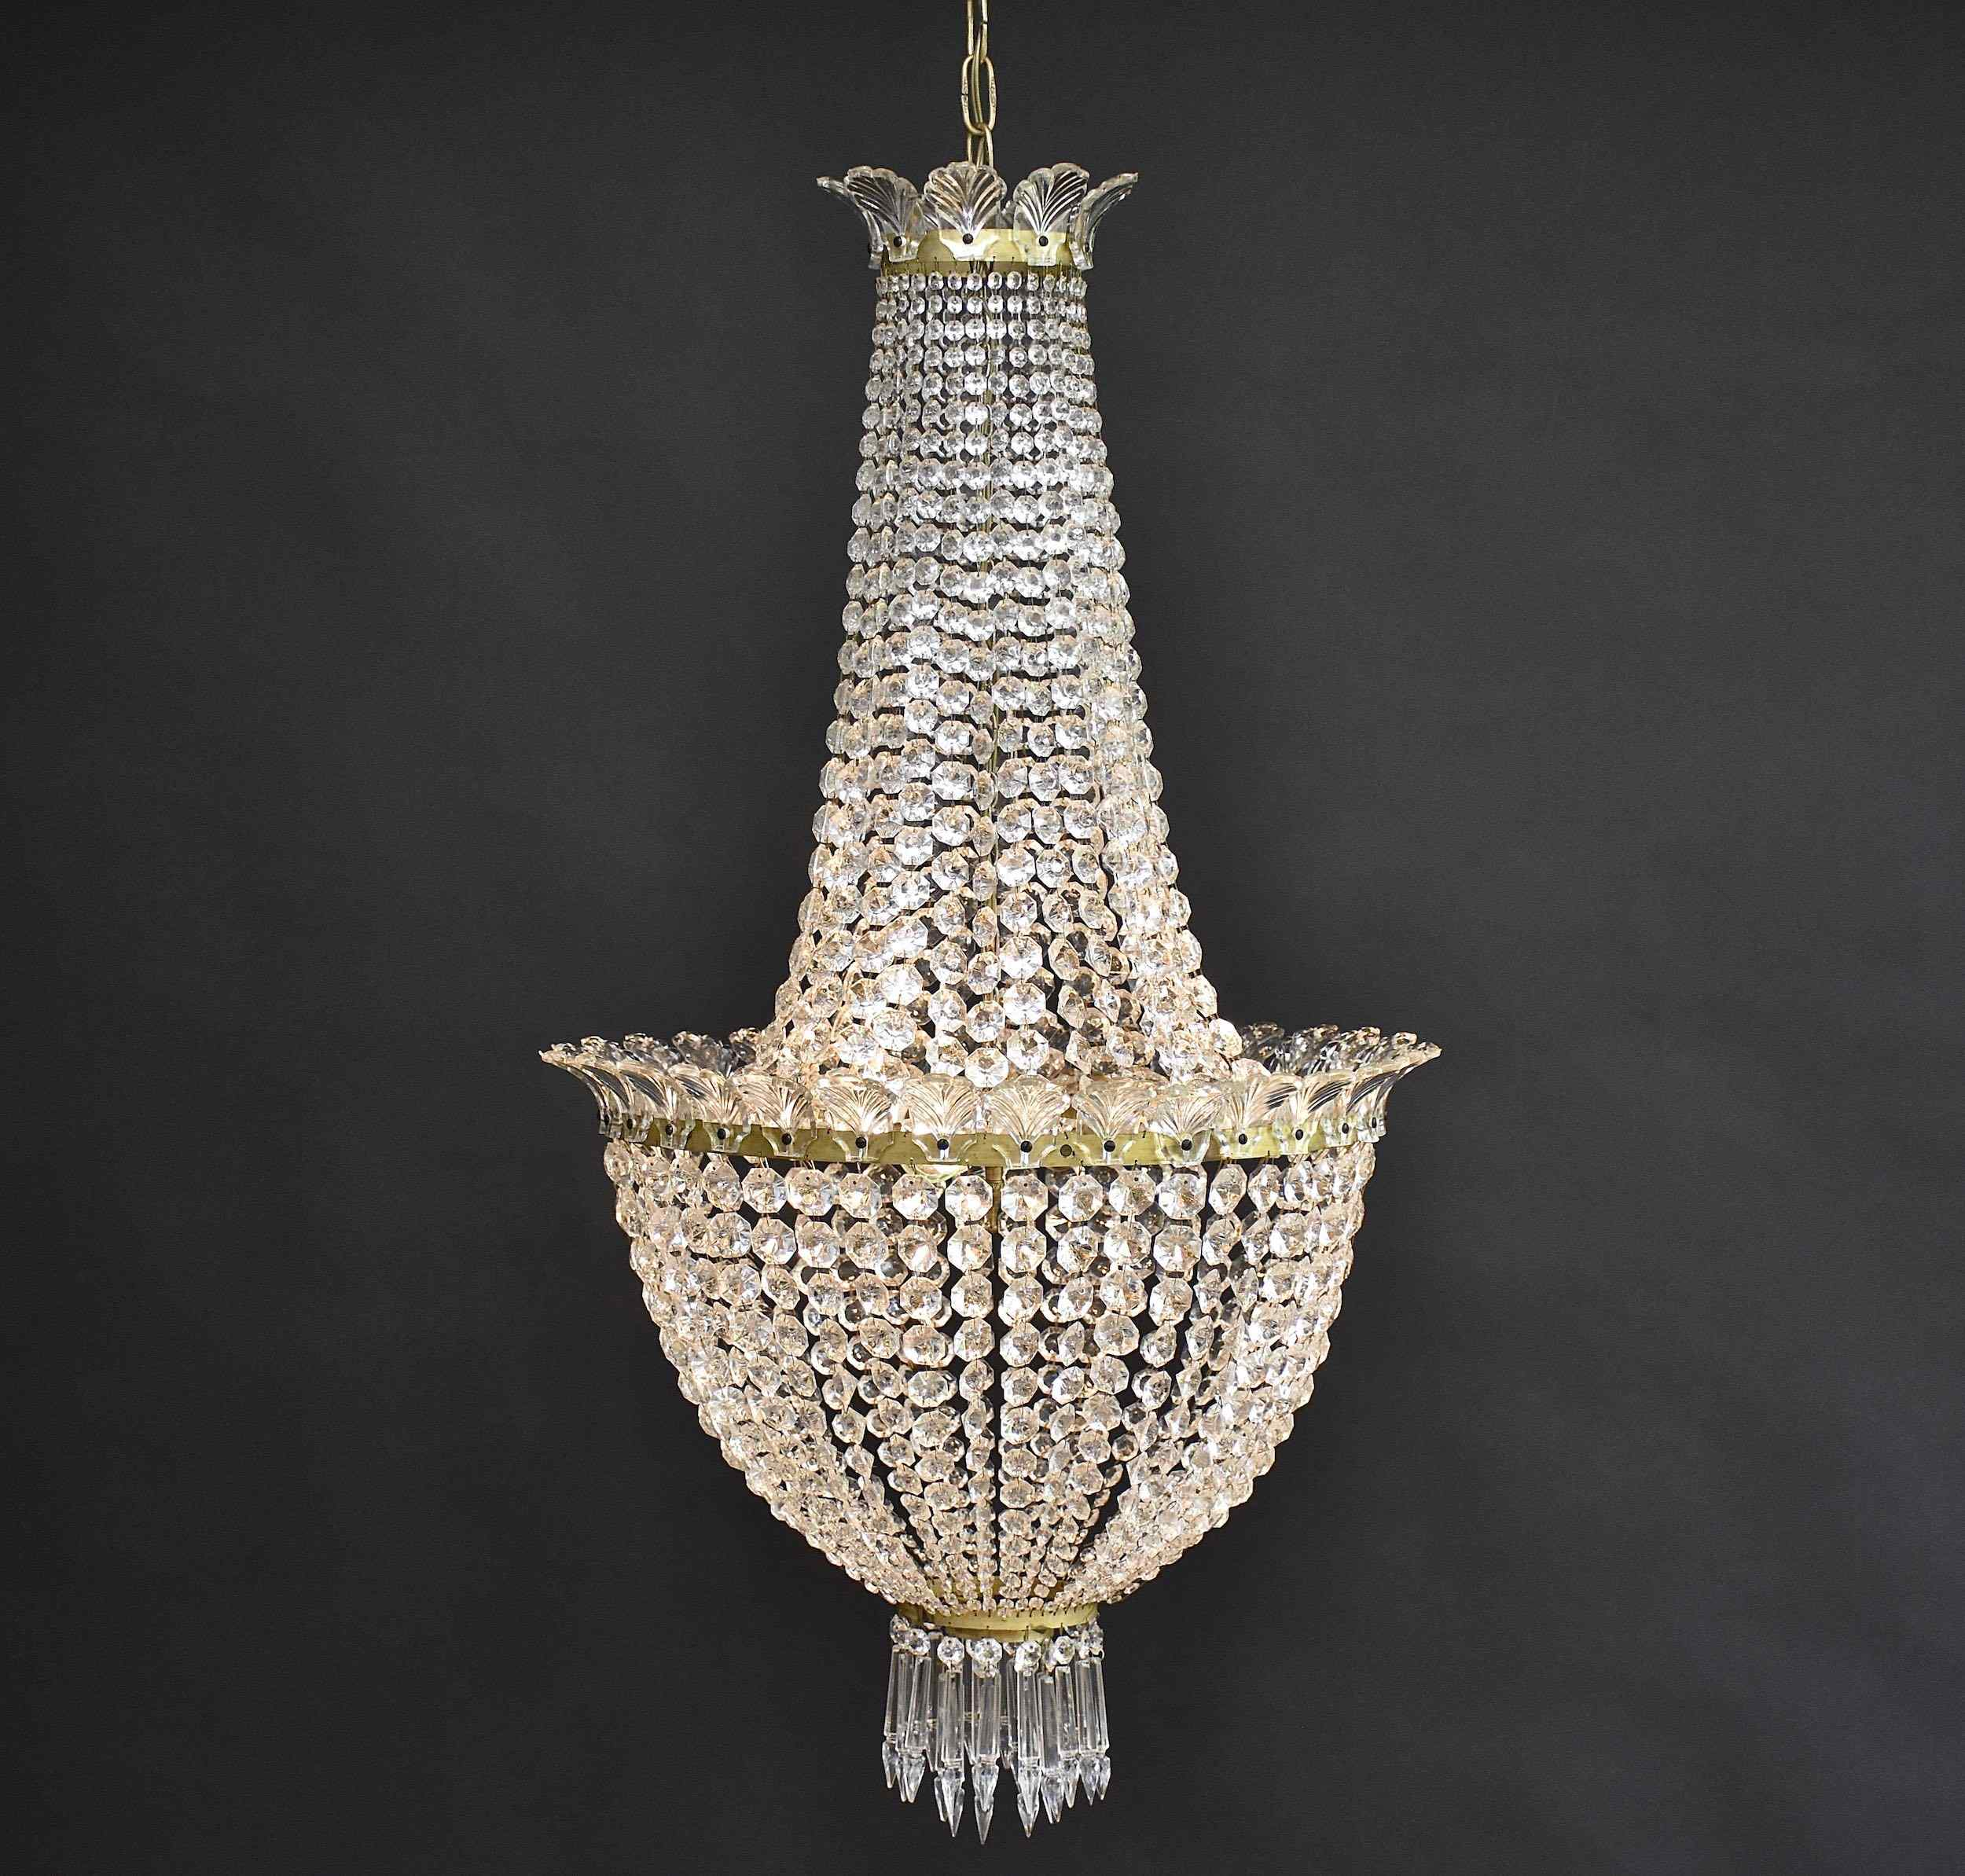 Empire style antique chandelier with 3 light